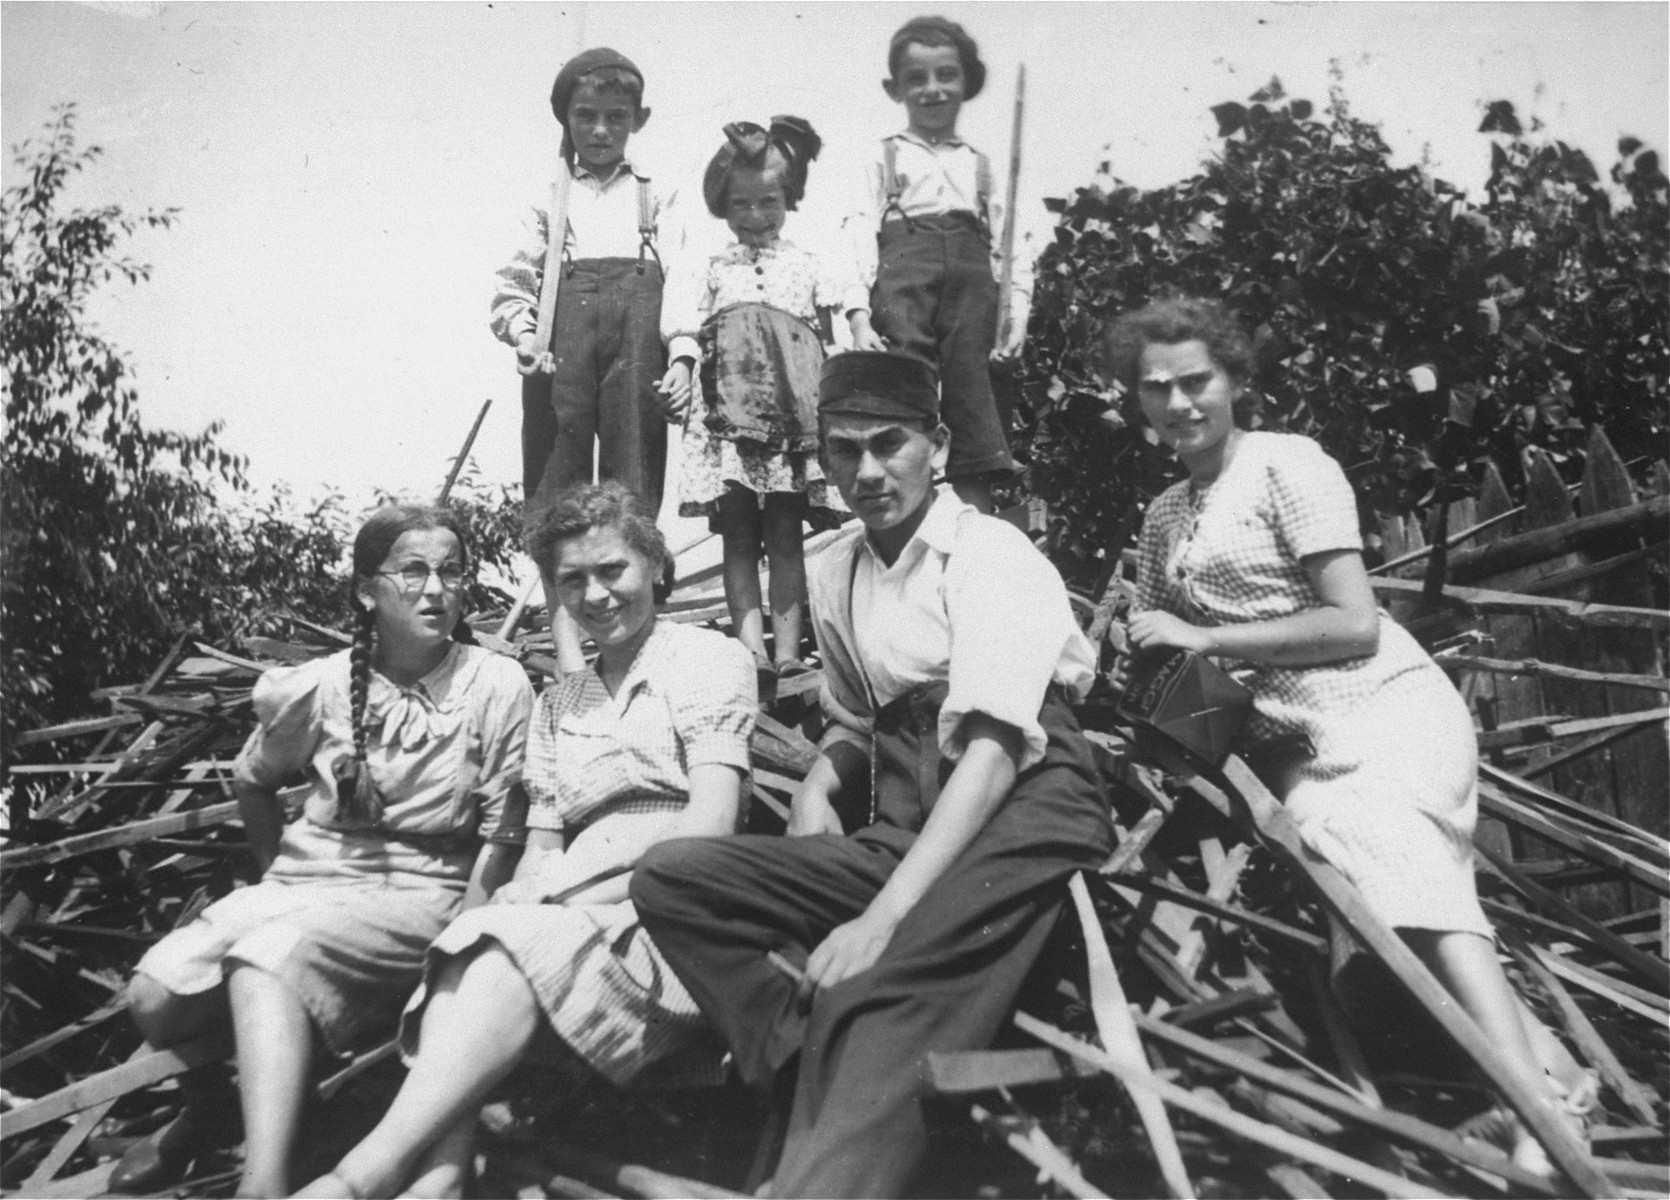 Members of the extended Saleschütz family pose on a pile of wood in Kolbuszowa.  Pictured in the back row from left to right are: Shulem, Rozia; Shloime, the children of Leibush Saleschütz.  Seated in front are Shaindel Weinstein, the daughter of Bluma Saleschütz. Matla, Naftali and Rachel Saleschütz.